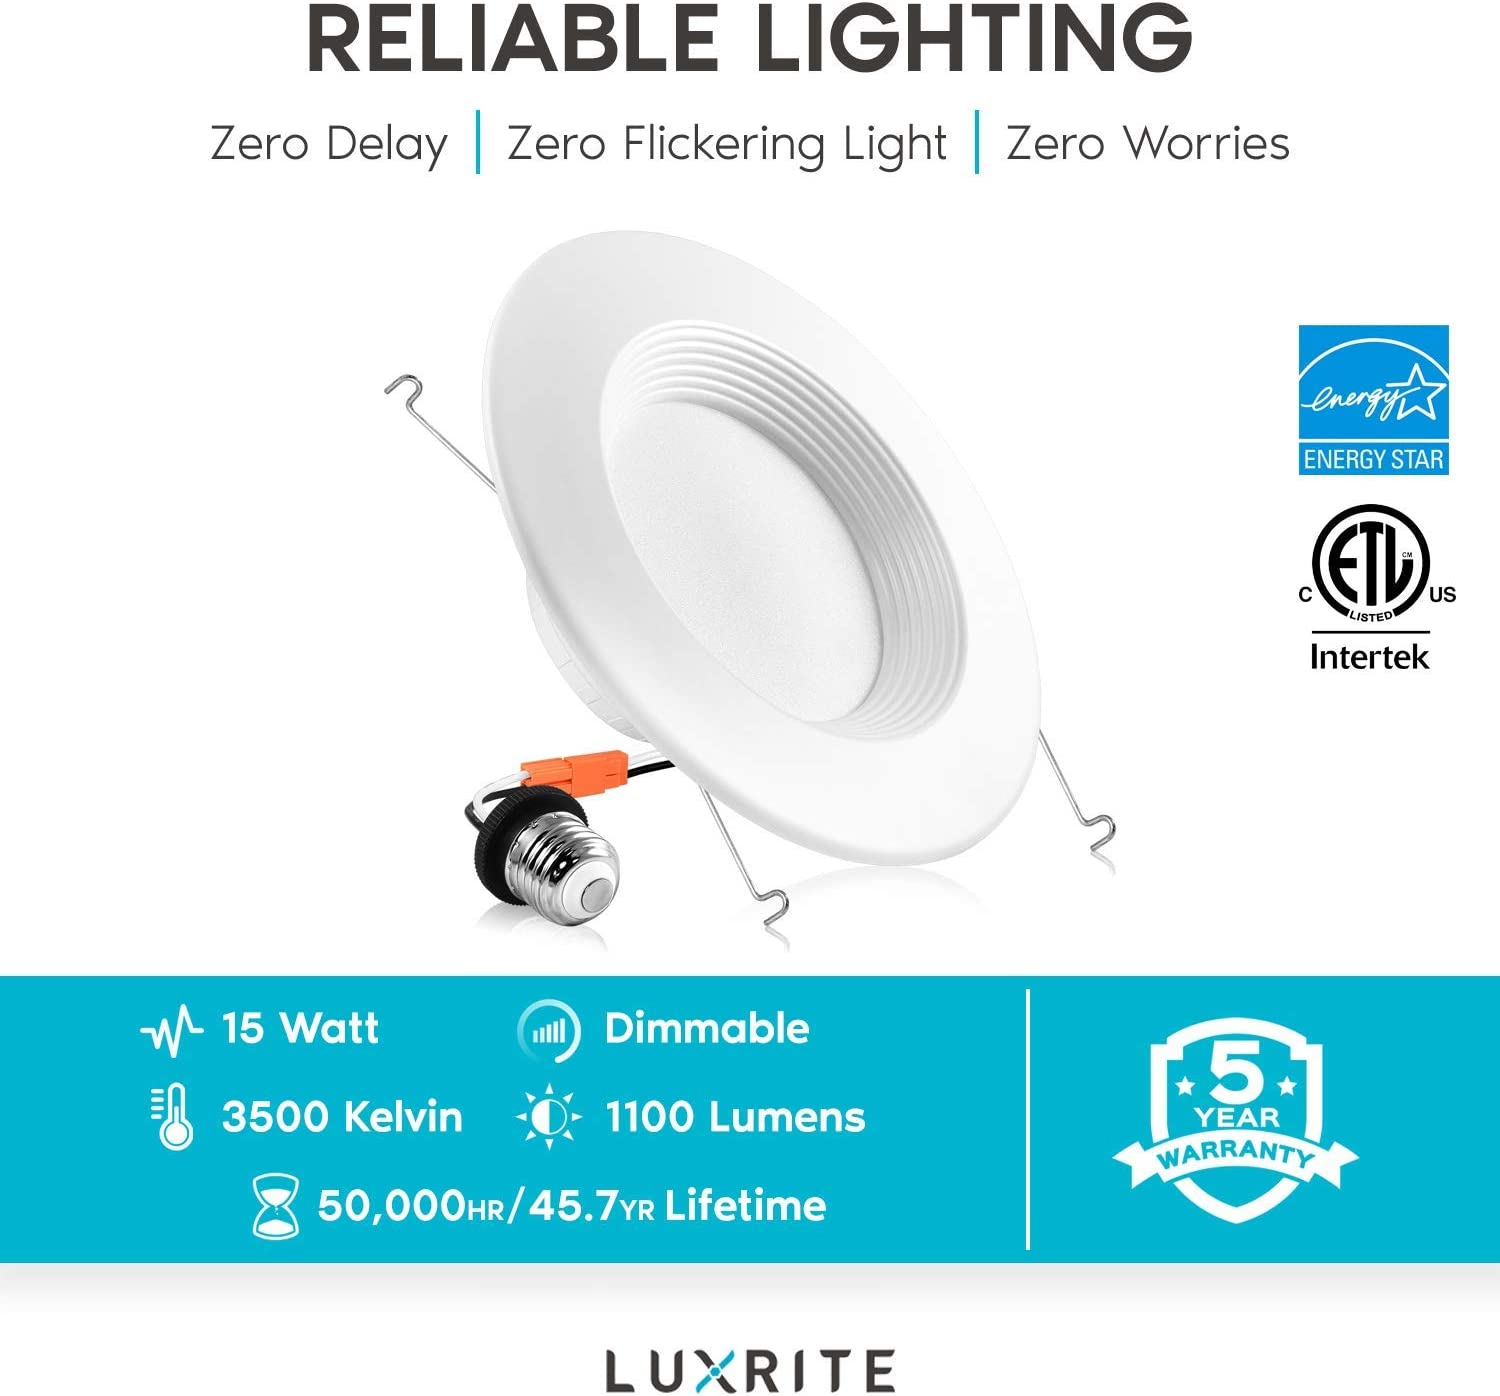 Luxrite 5//6 Inch LED Recessed Lights Dimmable Baffle Trim 1100 Lumens ETL Listed LR24887-12 Natural White DOB 12 Pack 15W IC /& Damp Rated Retrofit LED Downlight 120W Equivalent 3500K Energy Star